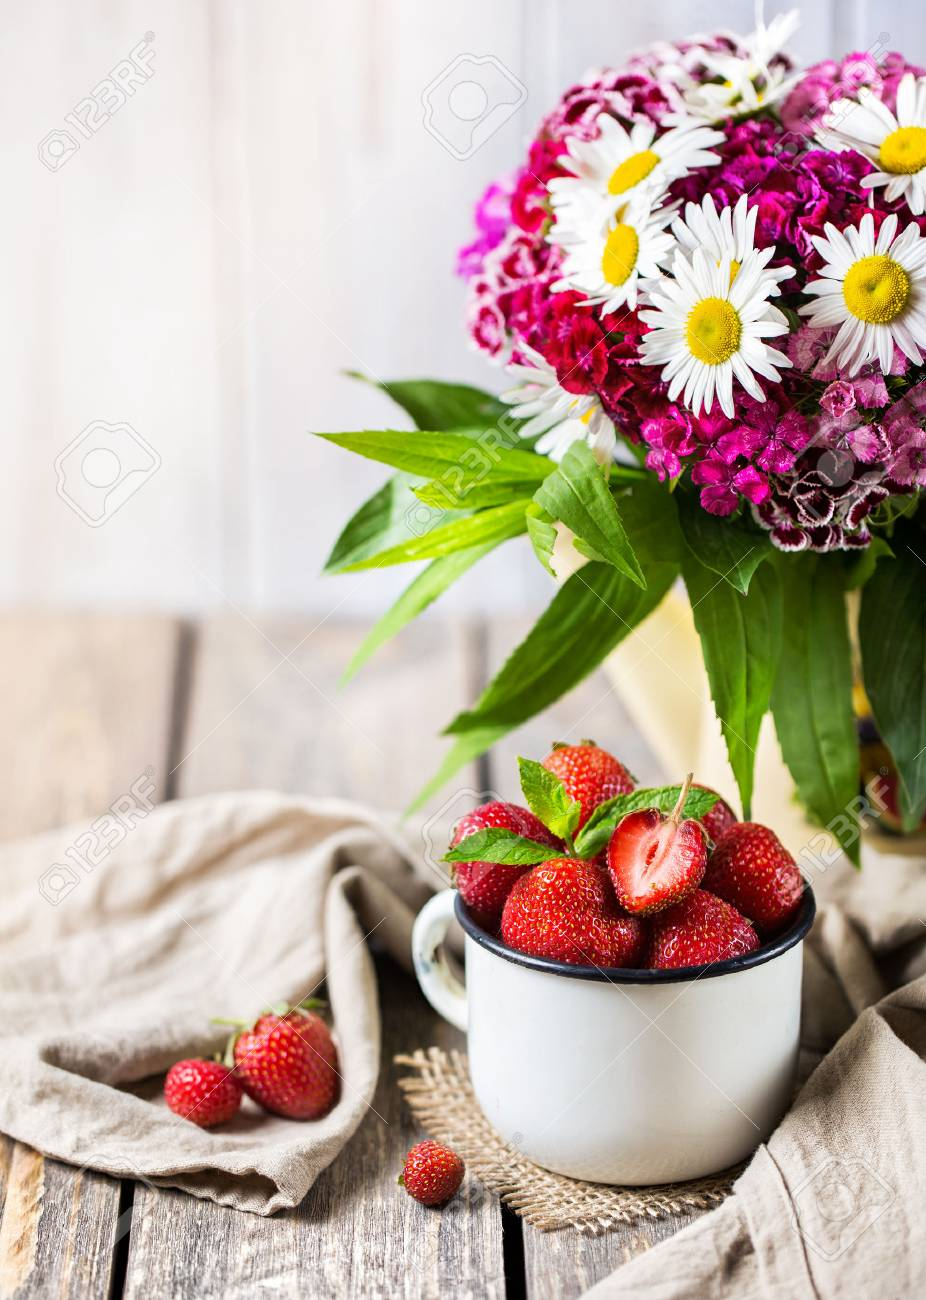 Strawberry In The Cup Near Flower Bouquet On Wooden Table Stock ...